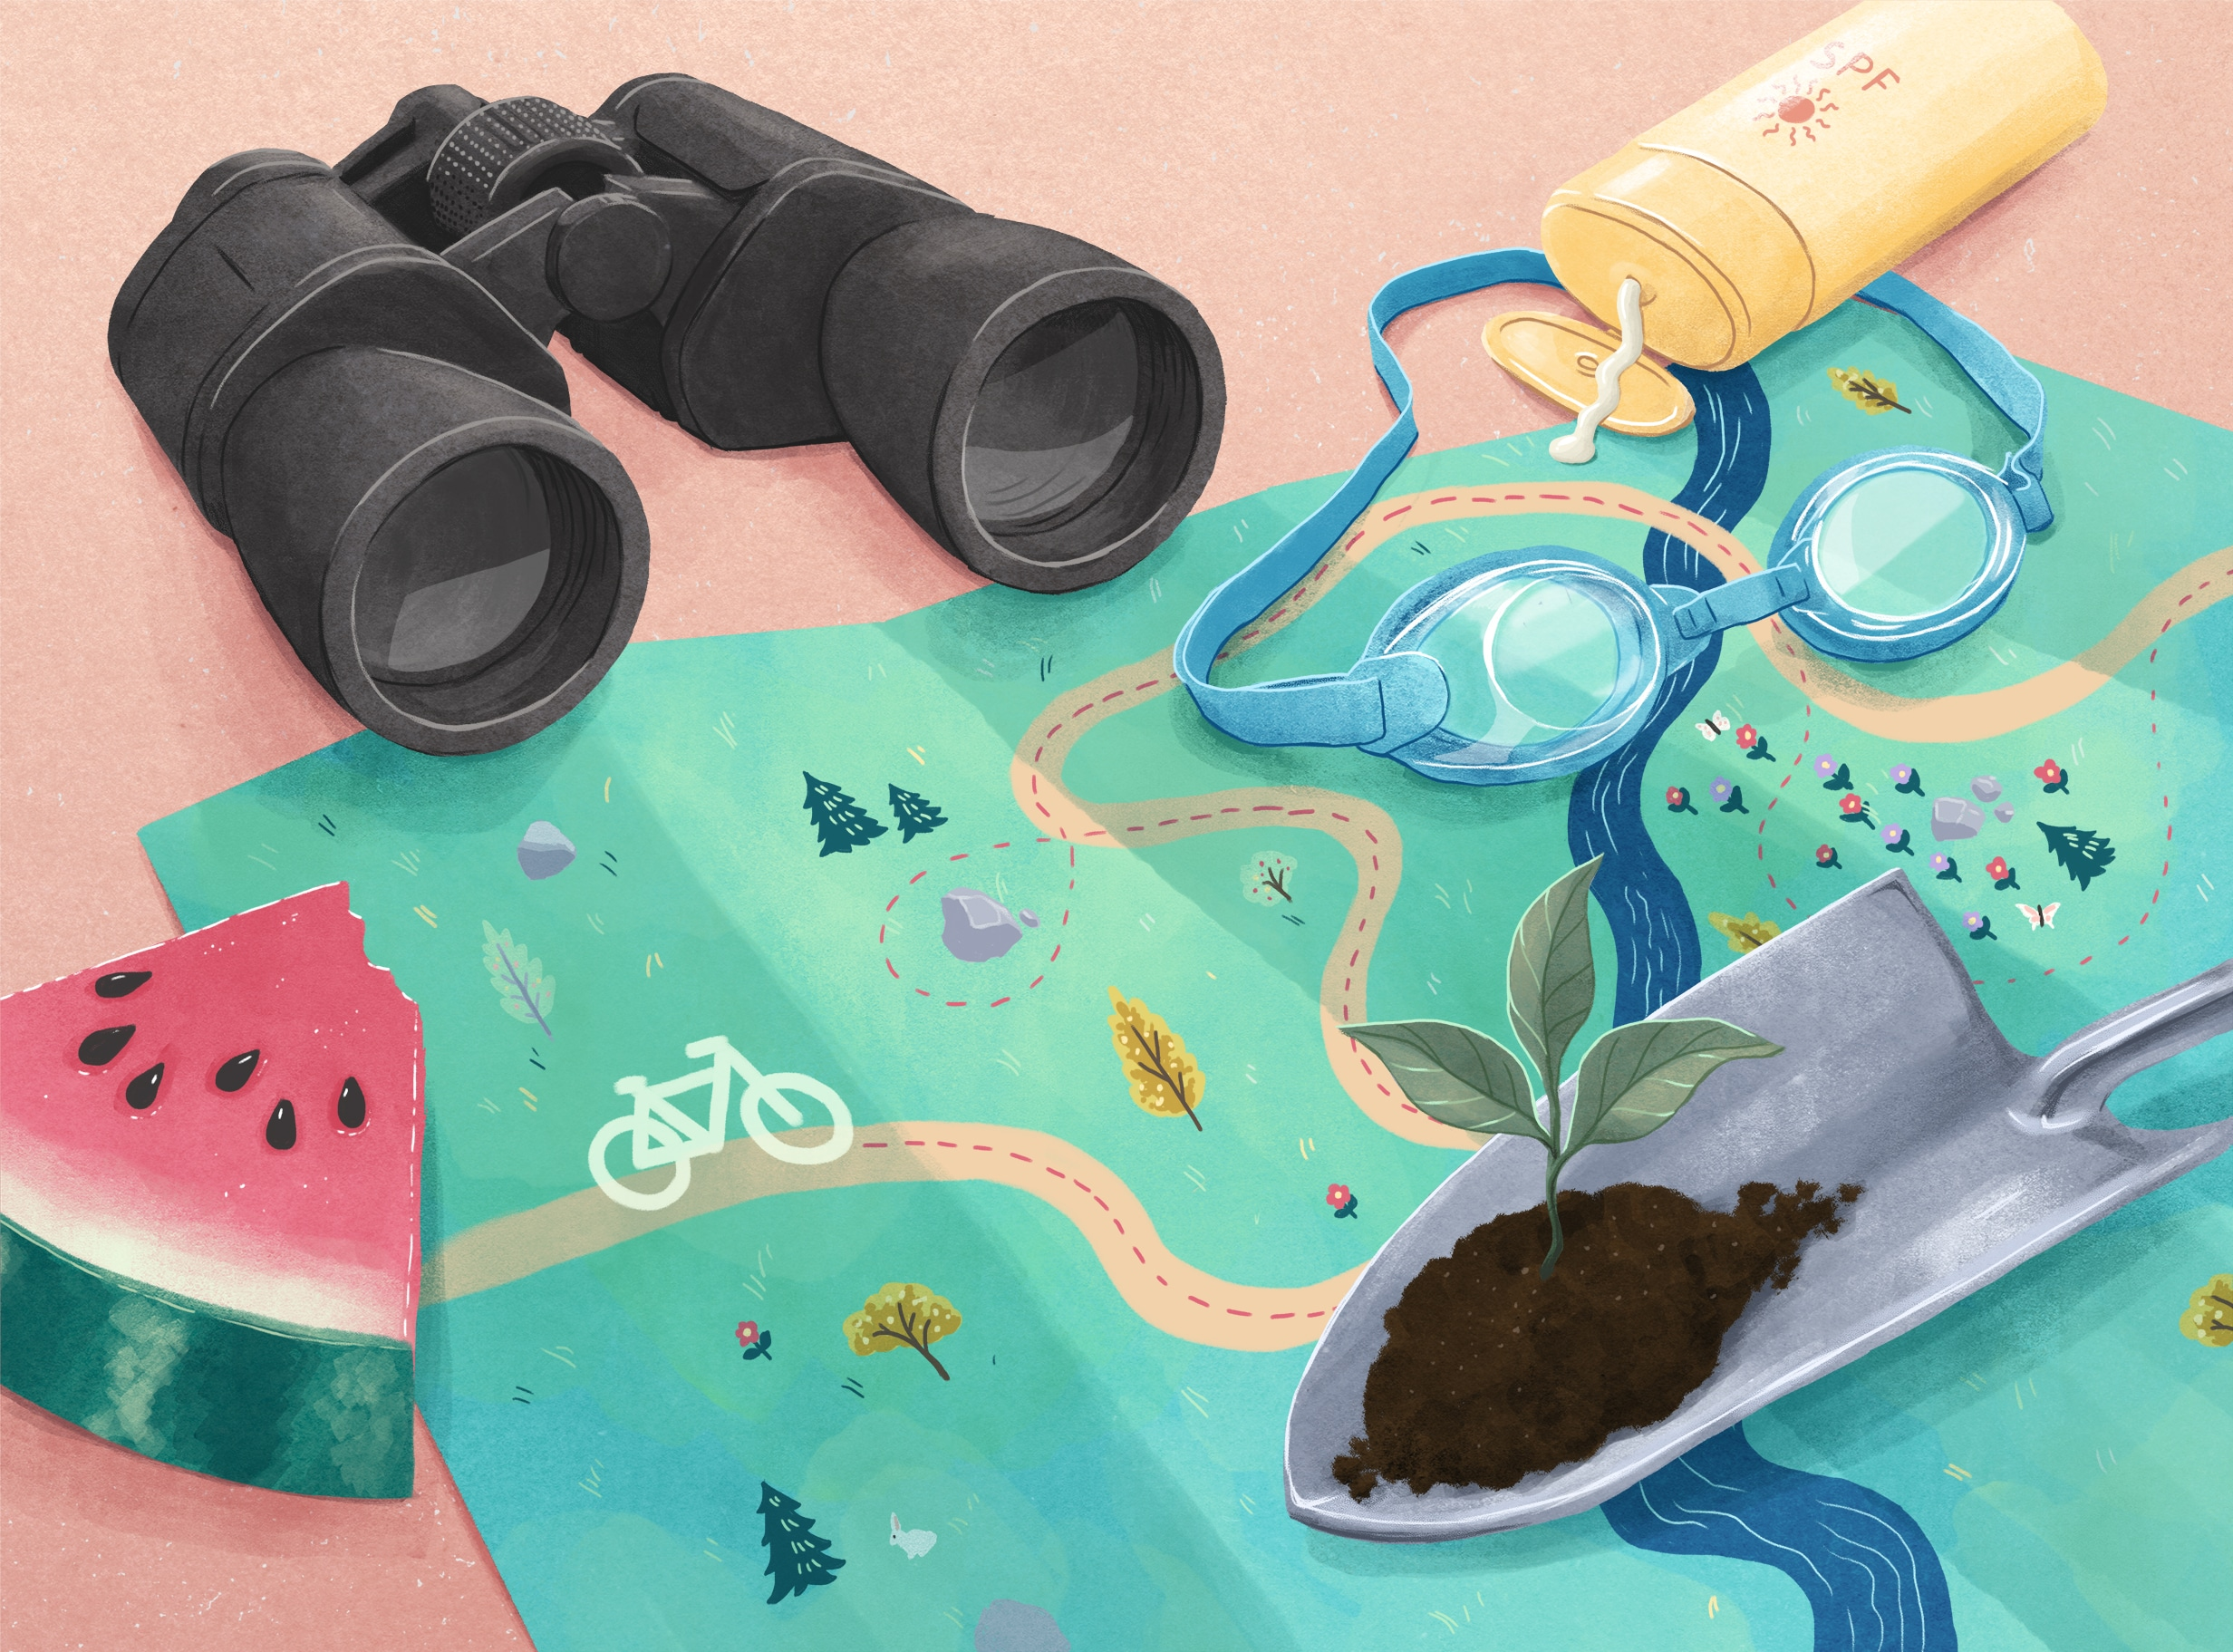 illustration of various vacation items